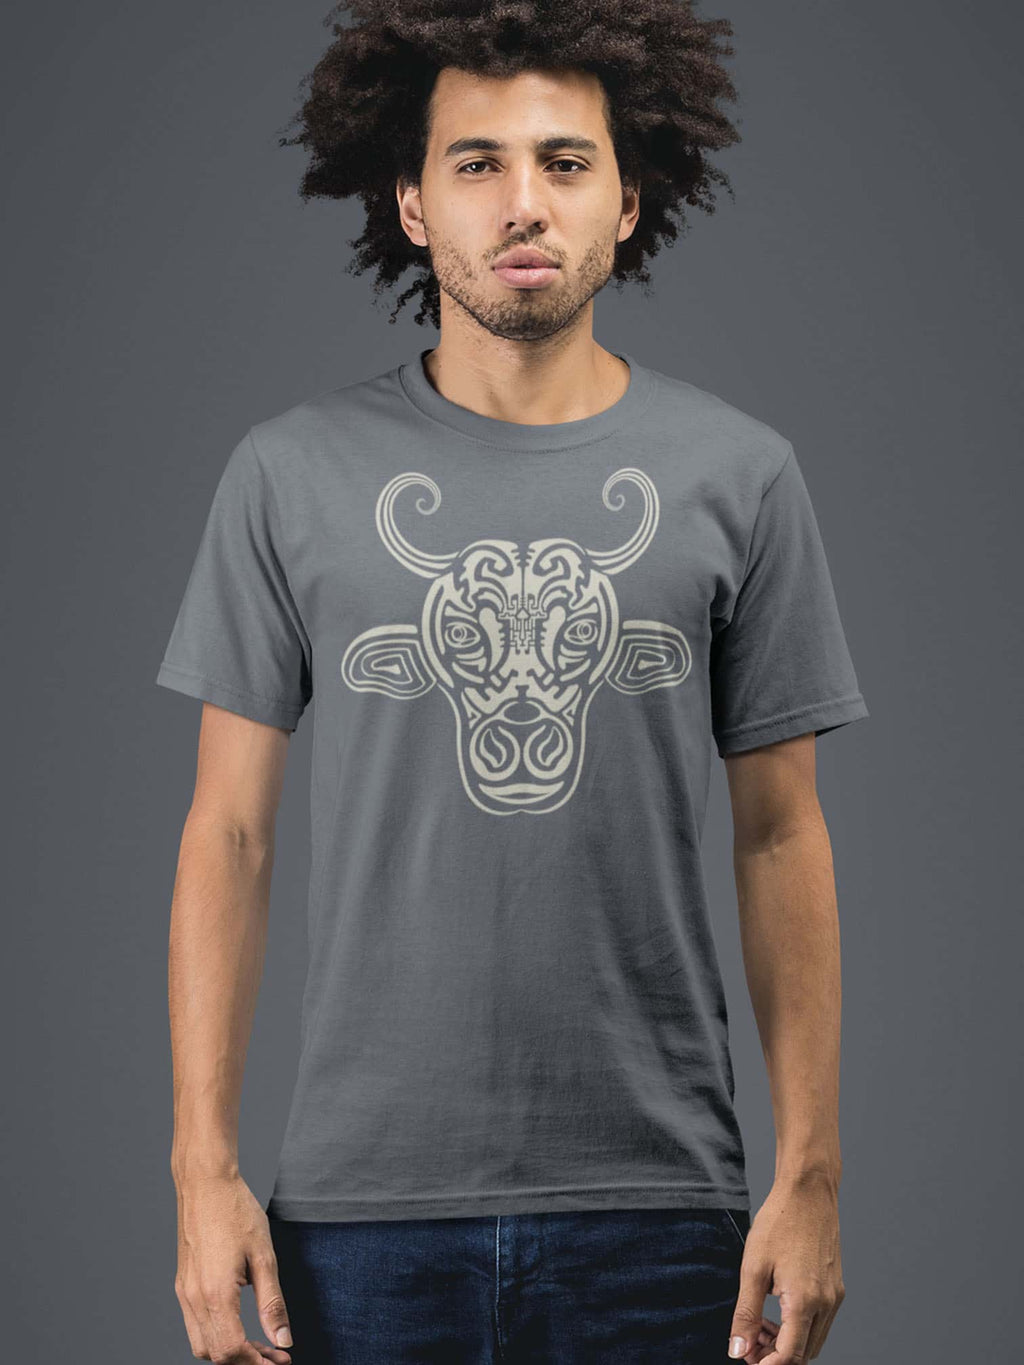 Holy Cow Made To Order Men T-Shirt - Light Charcoal